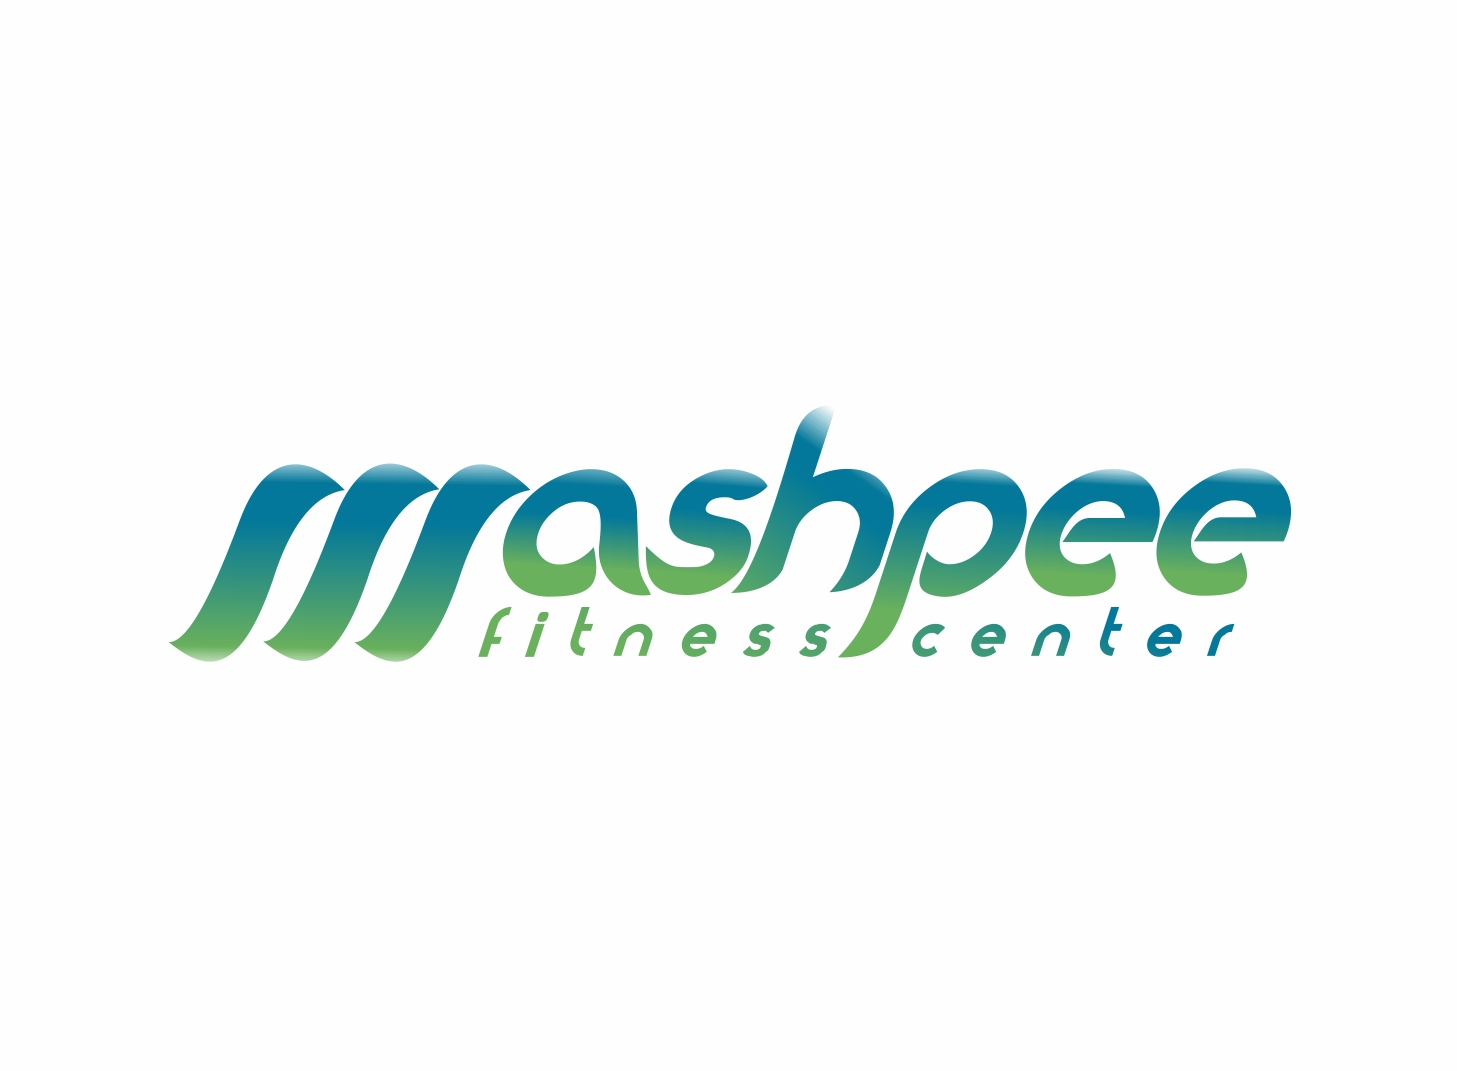 Logo Design by Zdravko Krulj - Entry No. 45 in the Logo Design Contest New Logo Design for Mashpee Fitness Center.